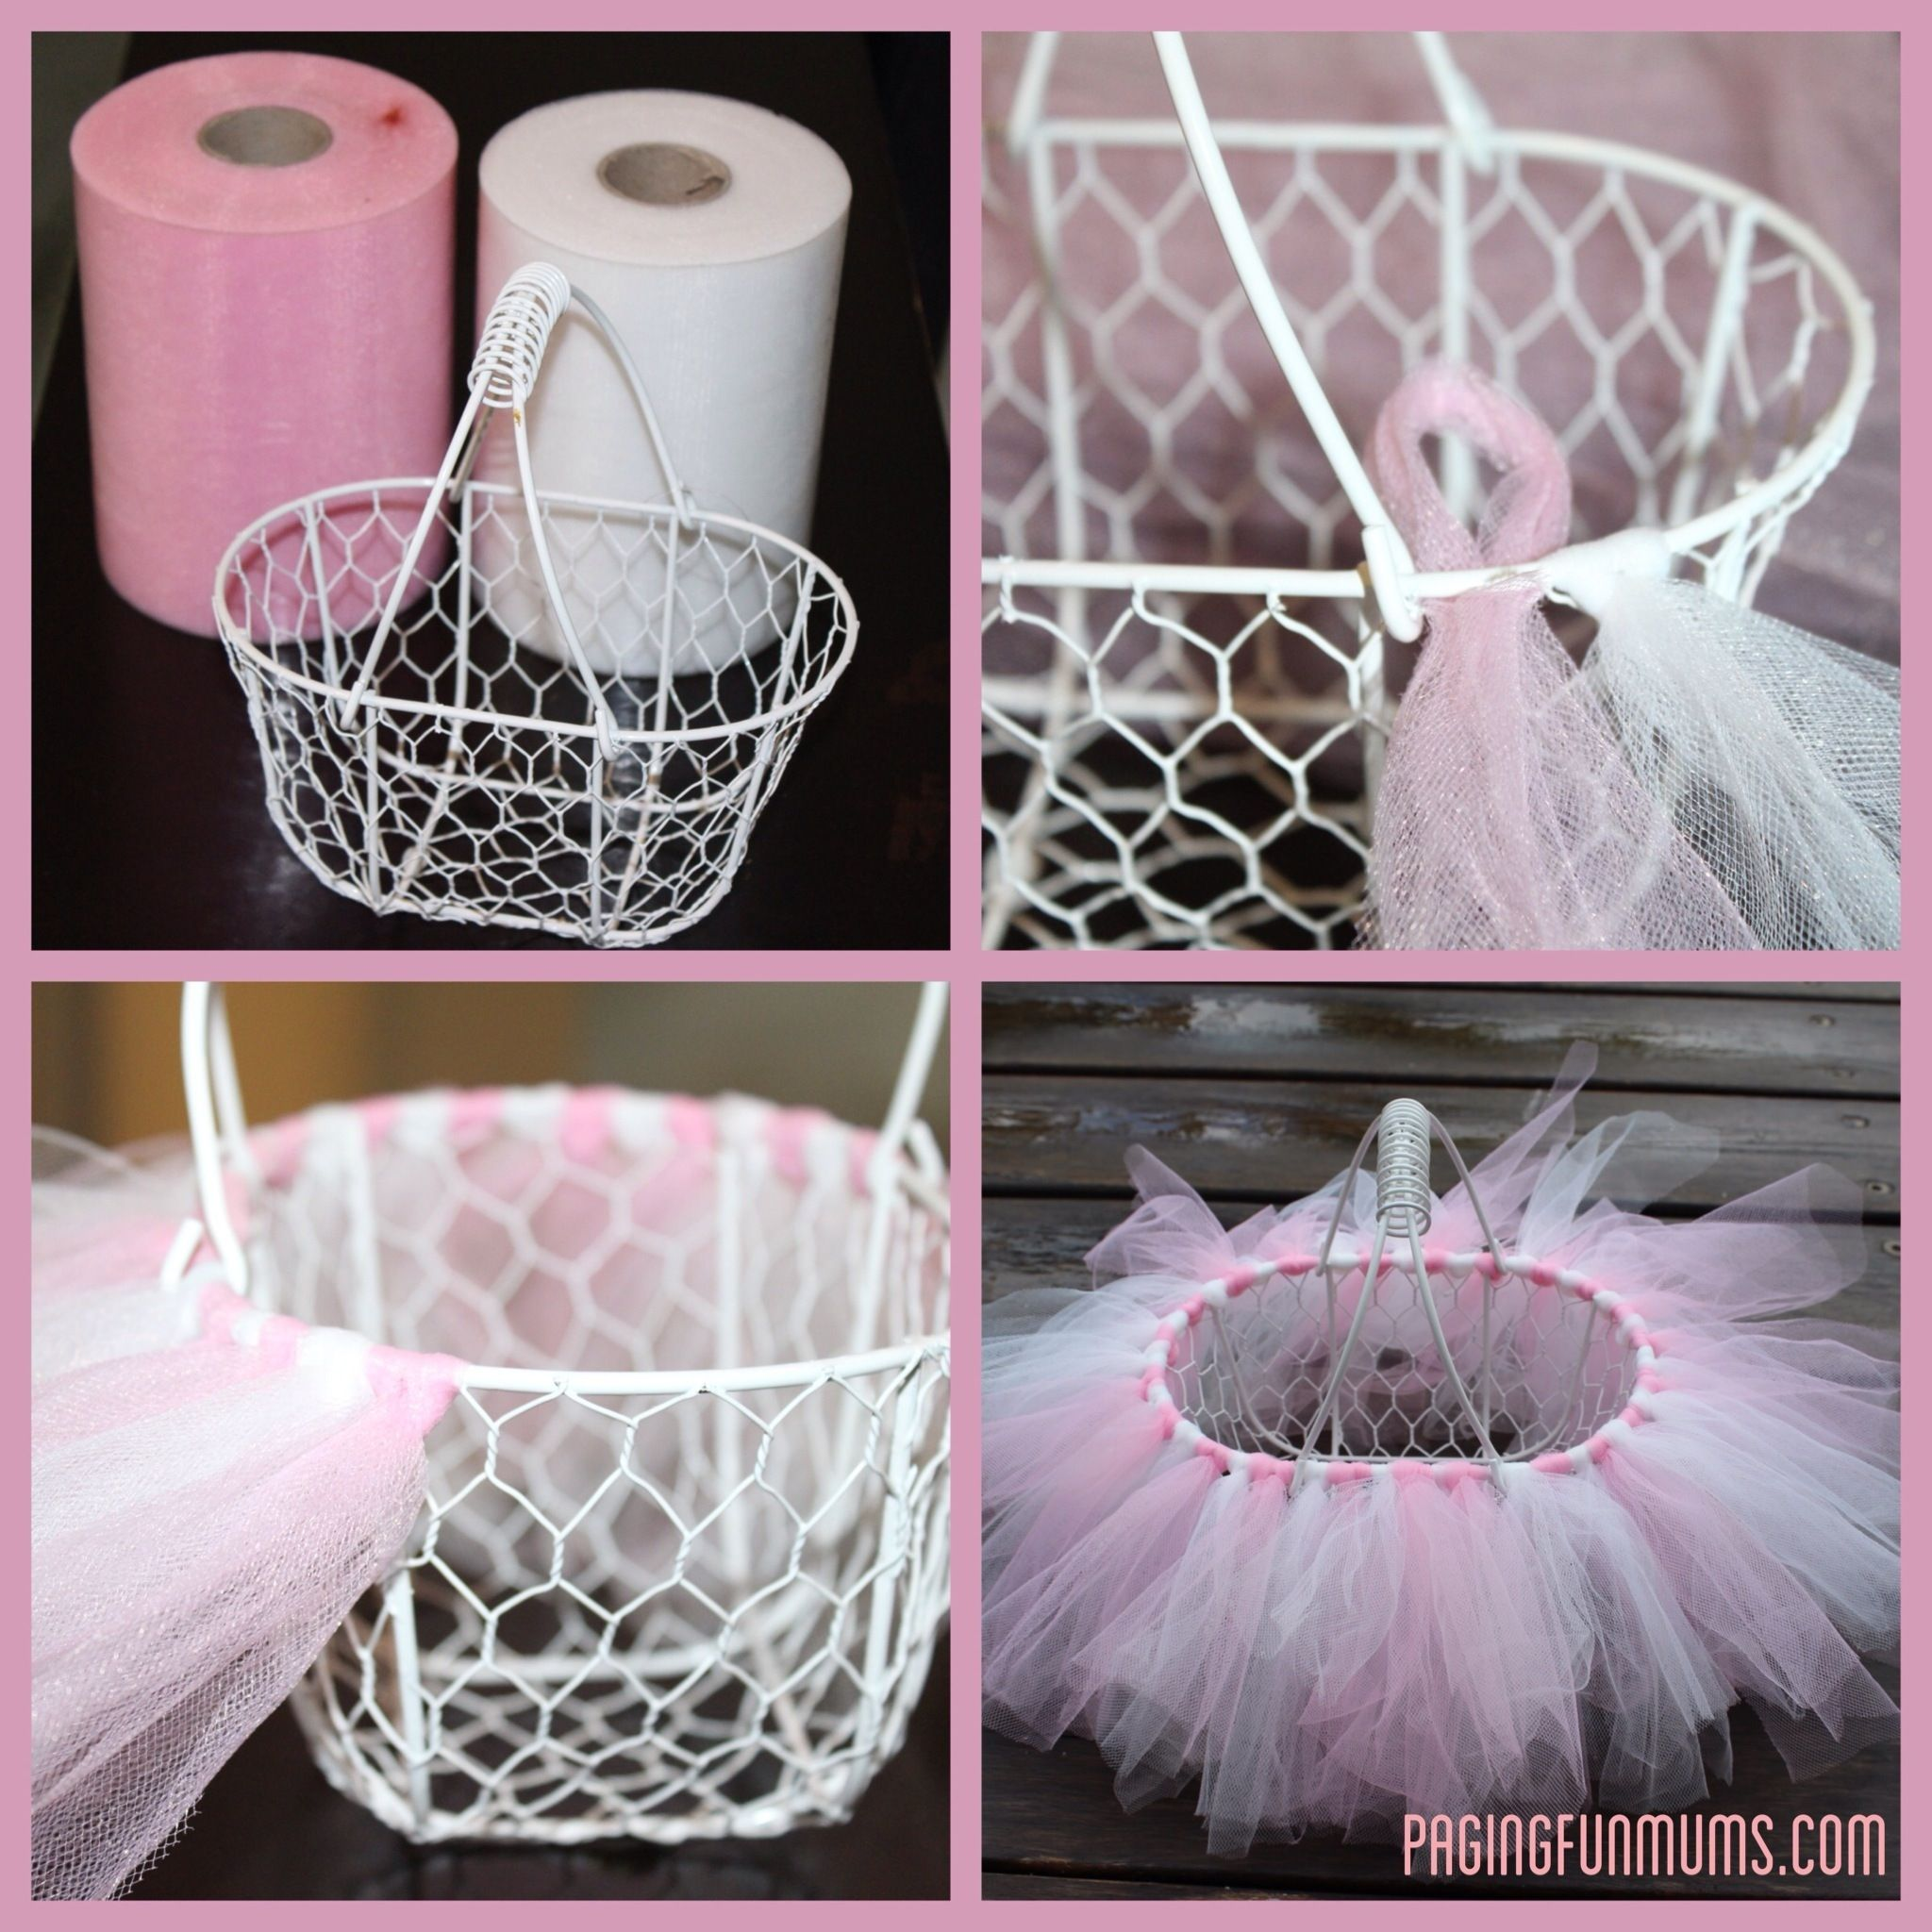 20130328 100440g 2 048 2 048 pixels baby shower ideas easy diy tutu easter basket louise maybe use burlap ribbon and make it into a flower girl basket negle Choice Image